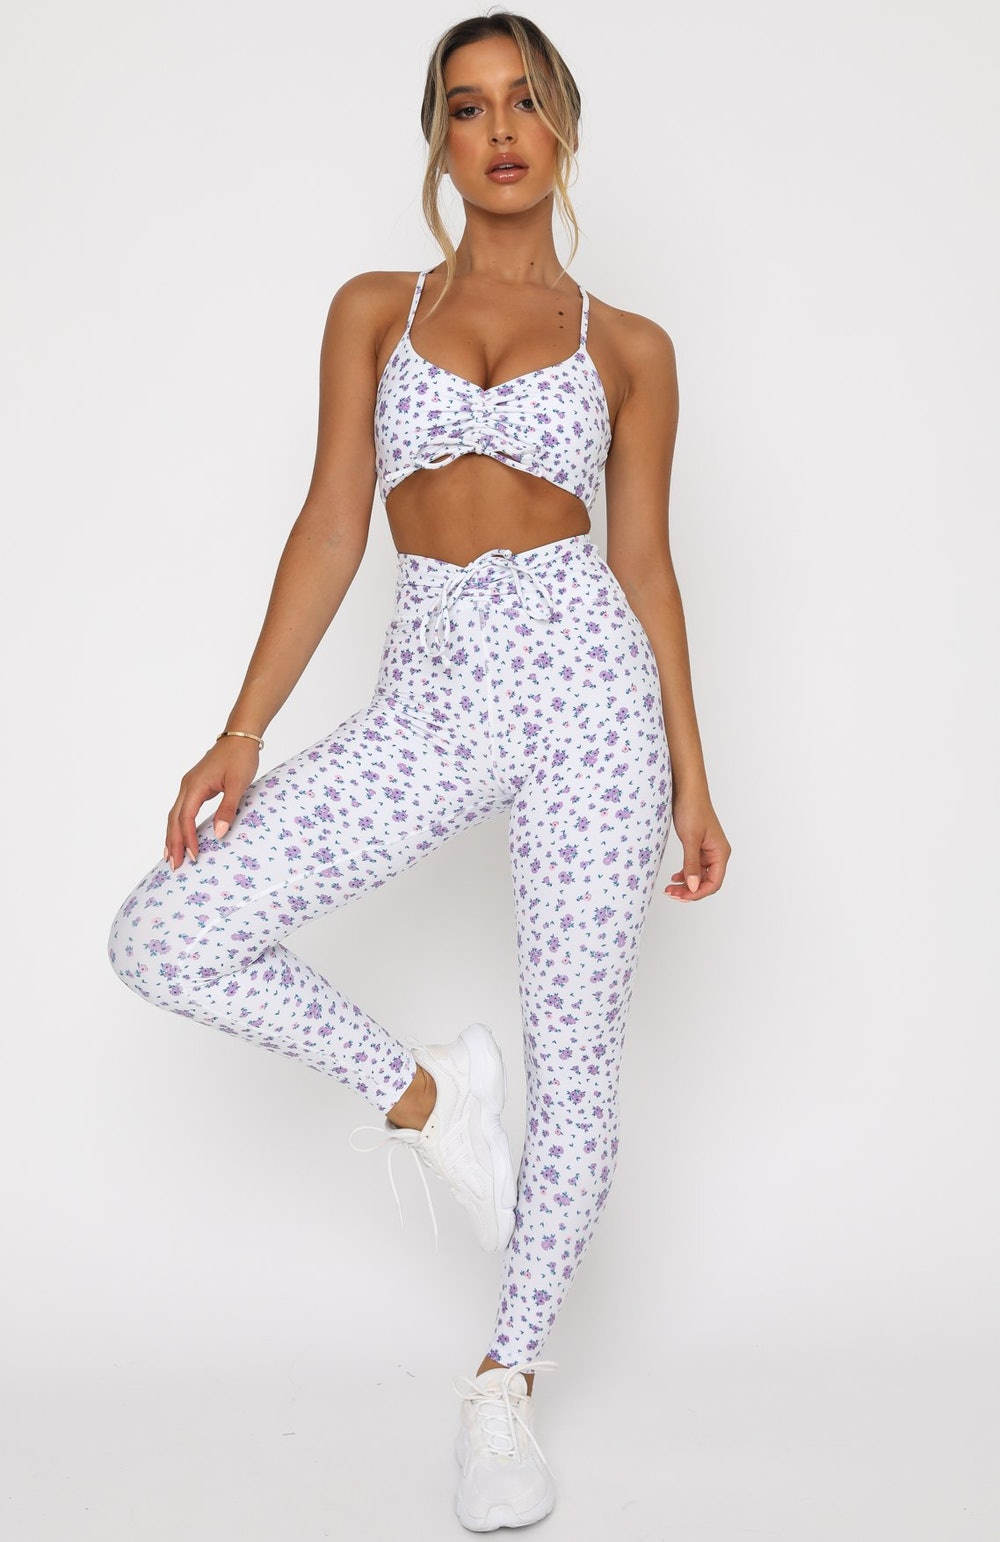 Go With The Flow Leggings in Purple Floral